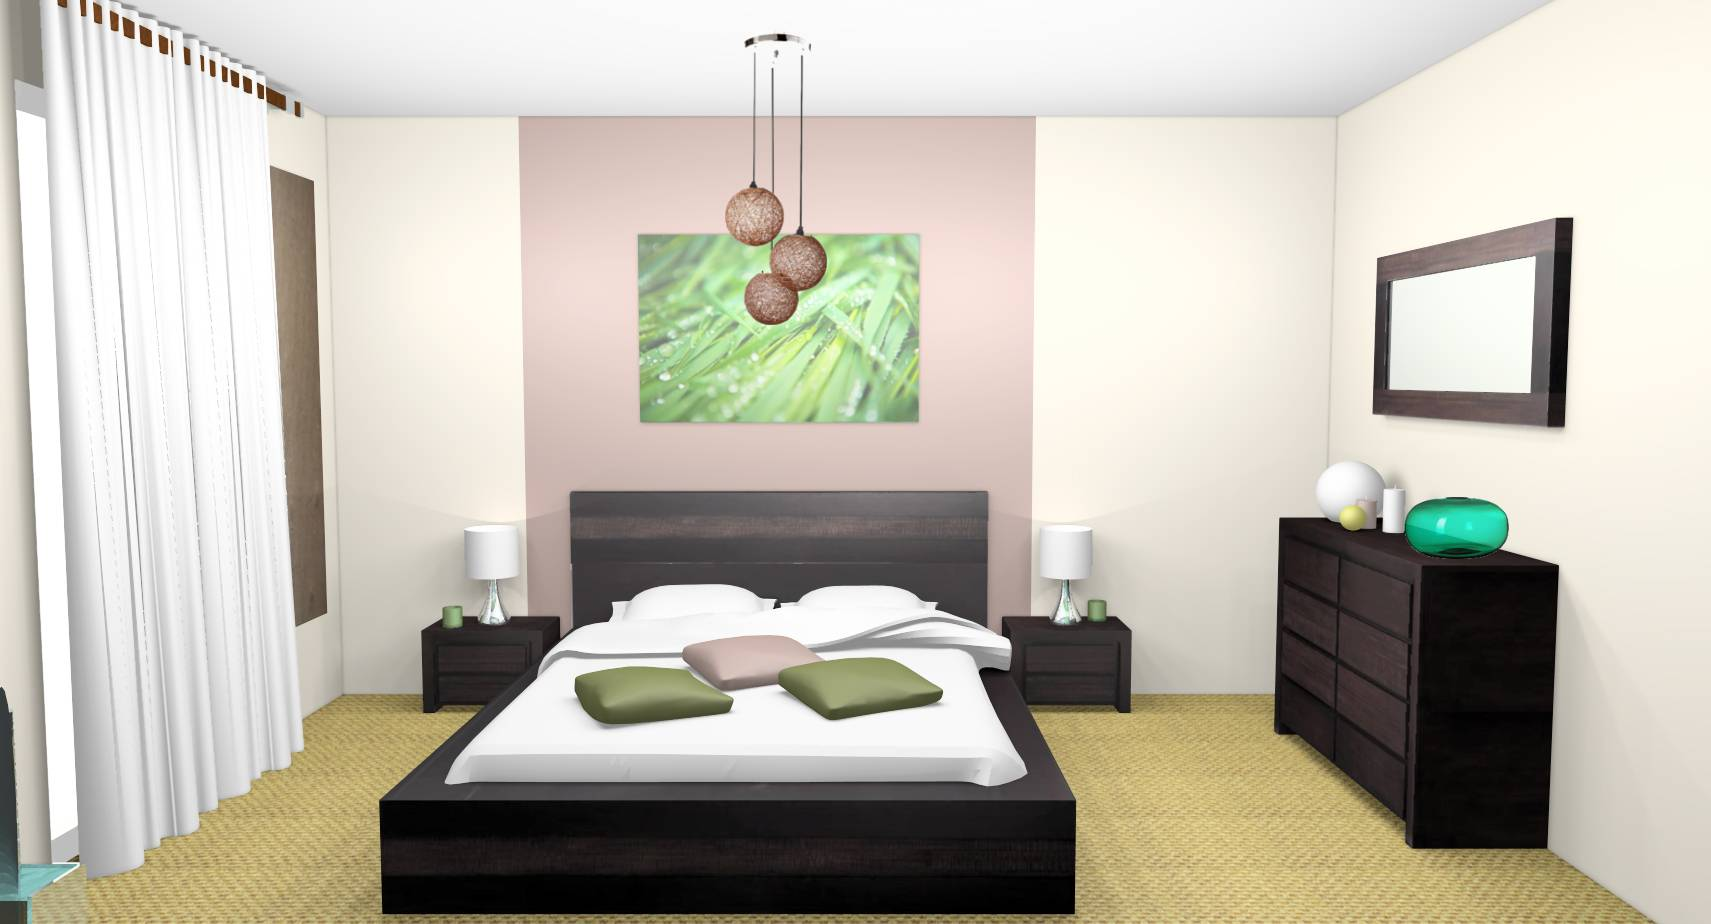 D coration chambre adulte zen for Decoration chambre adulte